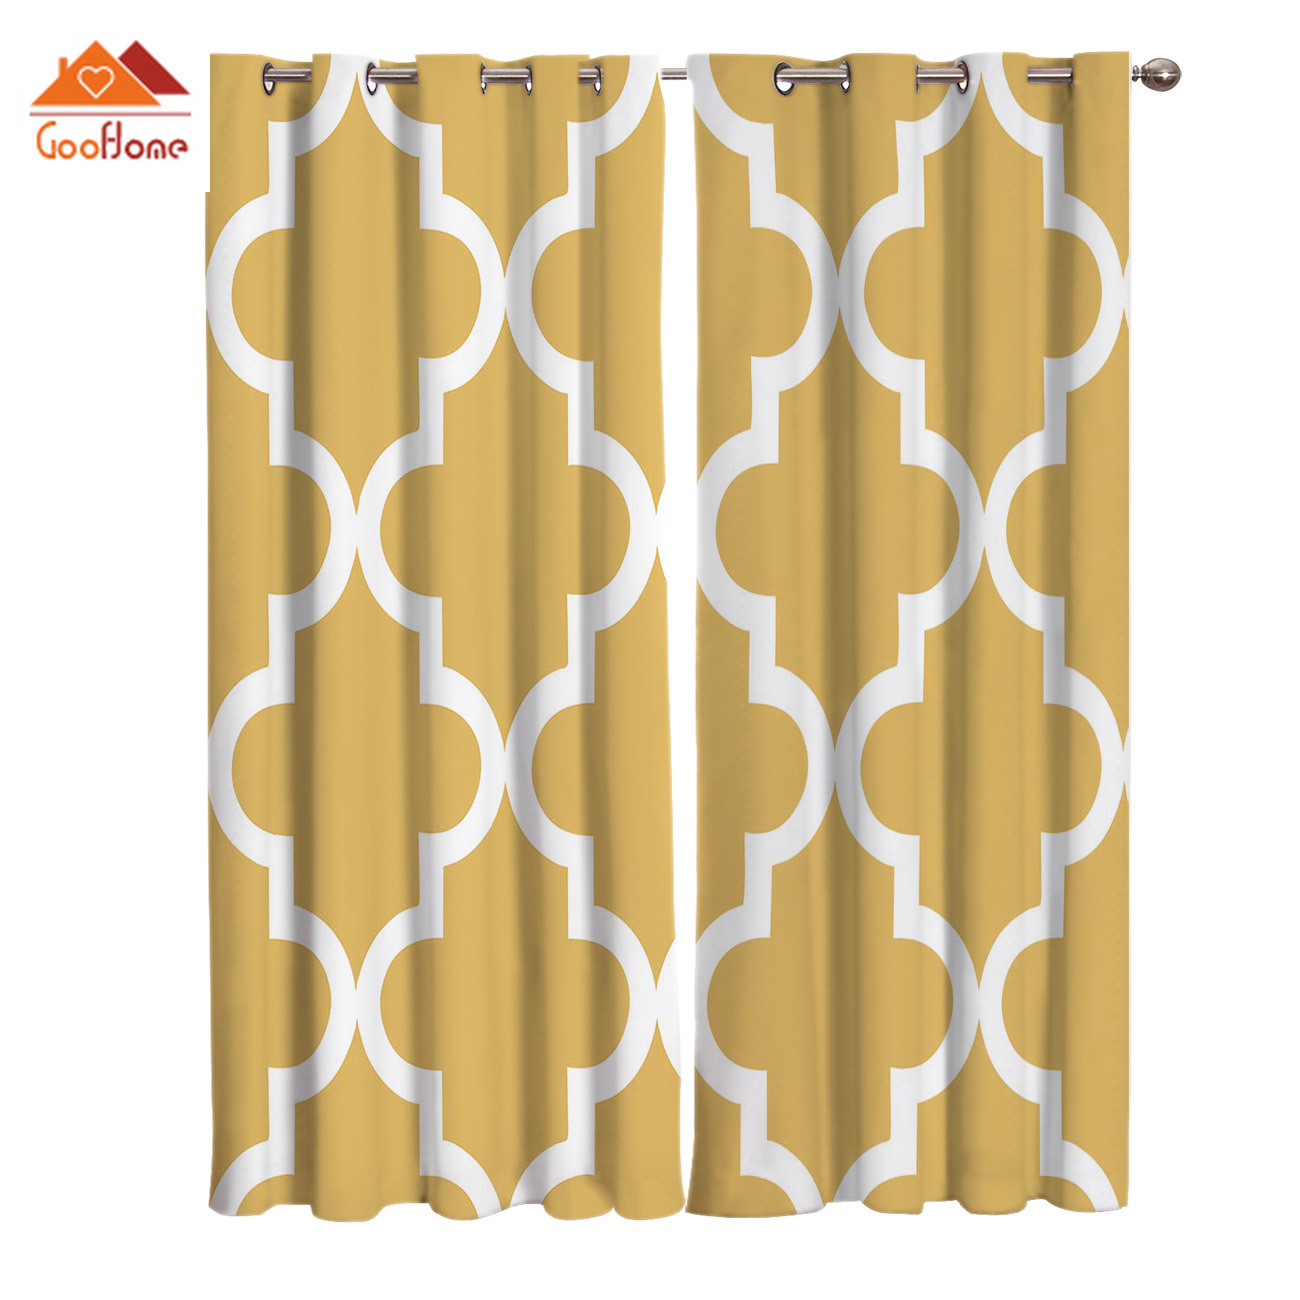 Geometric Lattice Prismatic Moroccan Style Yellow Window Curtains Living Room Outdoor Fabric Drapes Curtain Home Decor